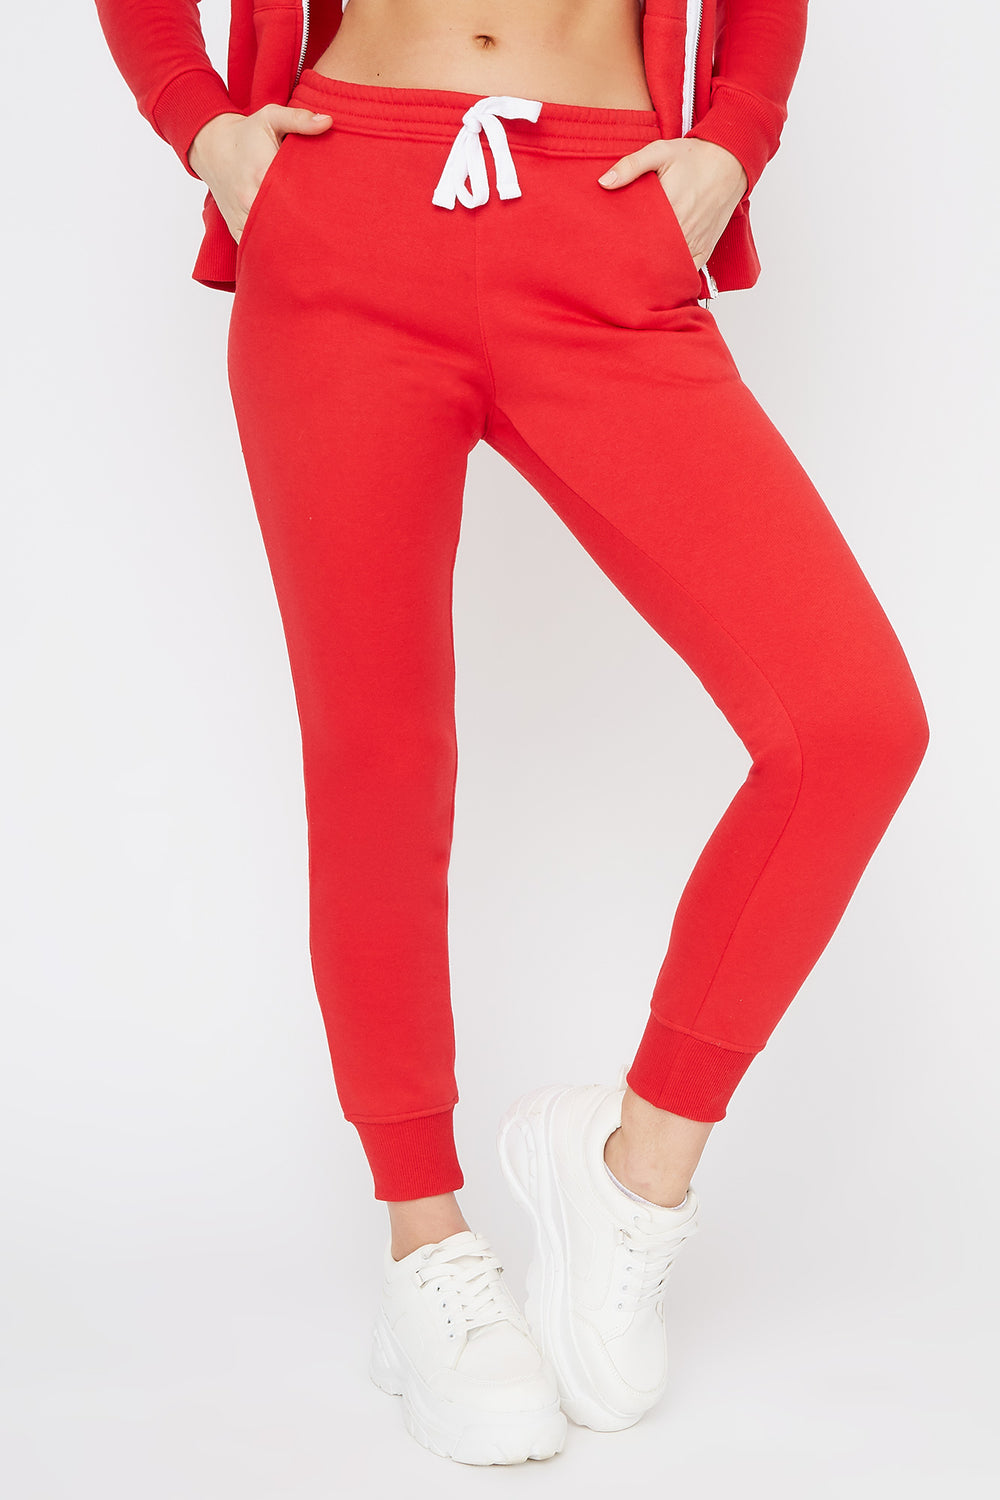 Pantalon de jogging uni de base Rouge